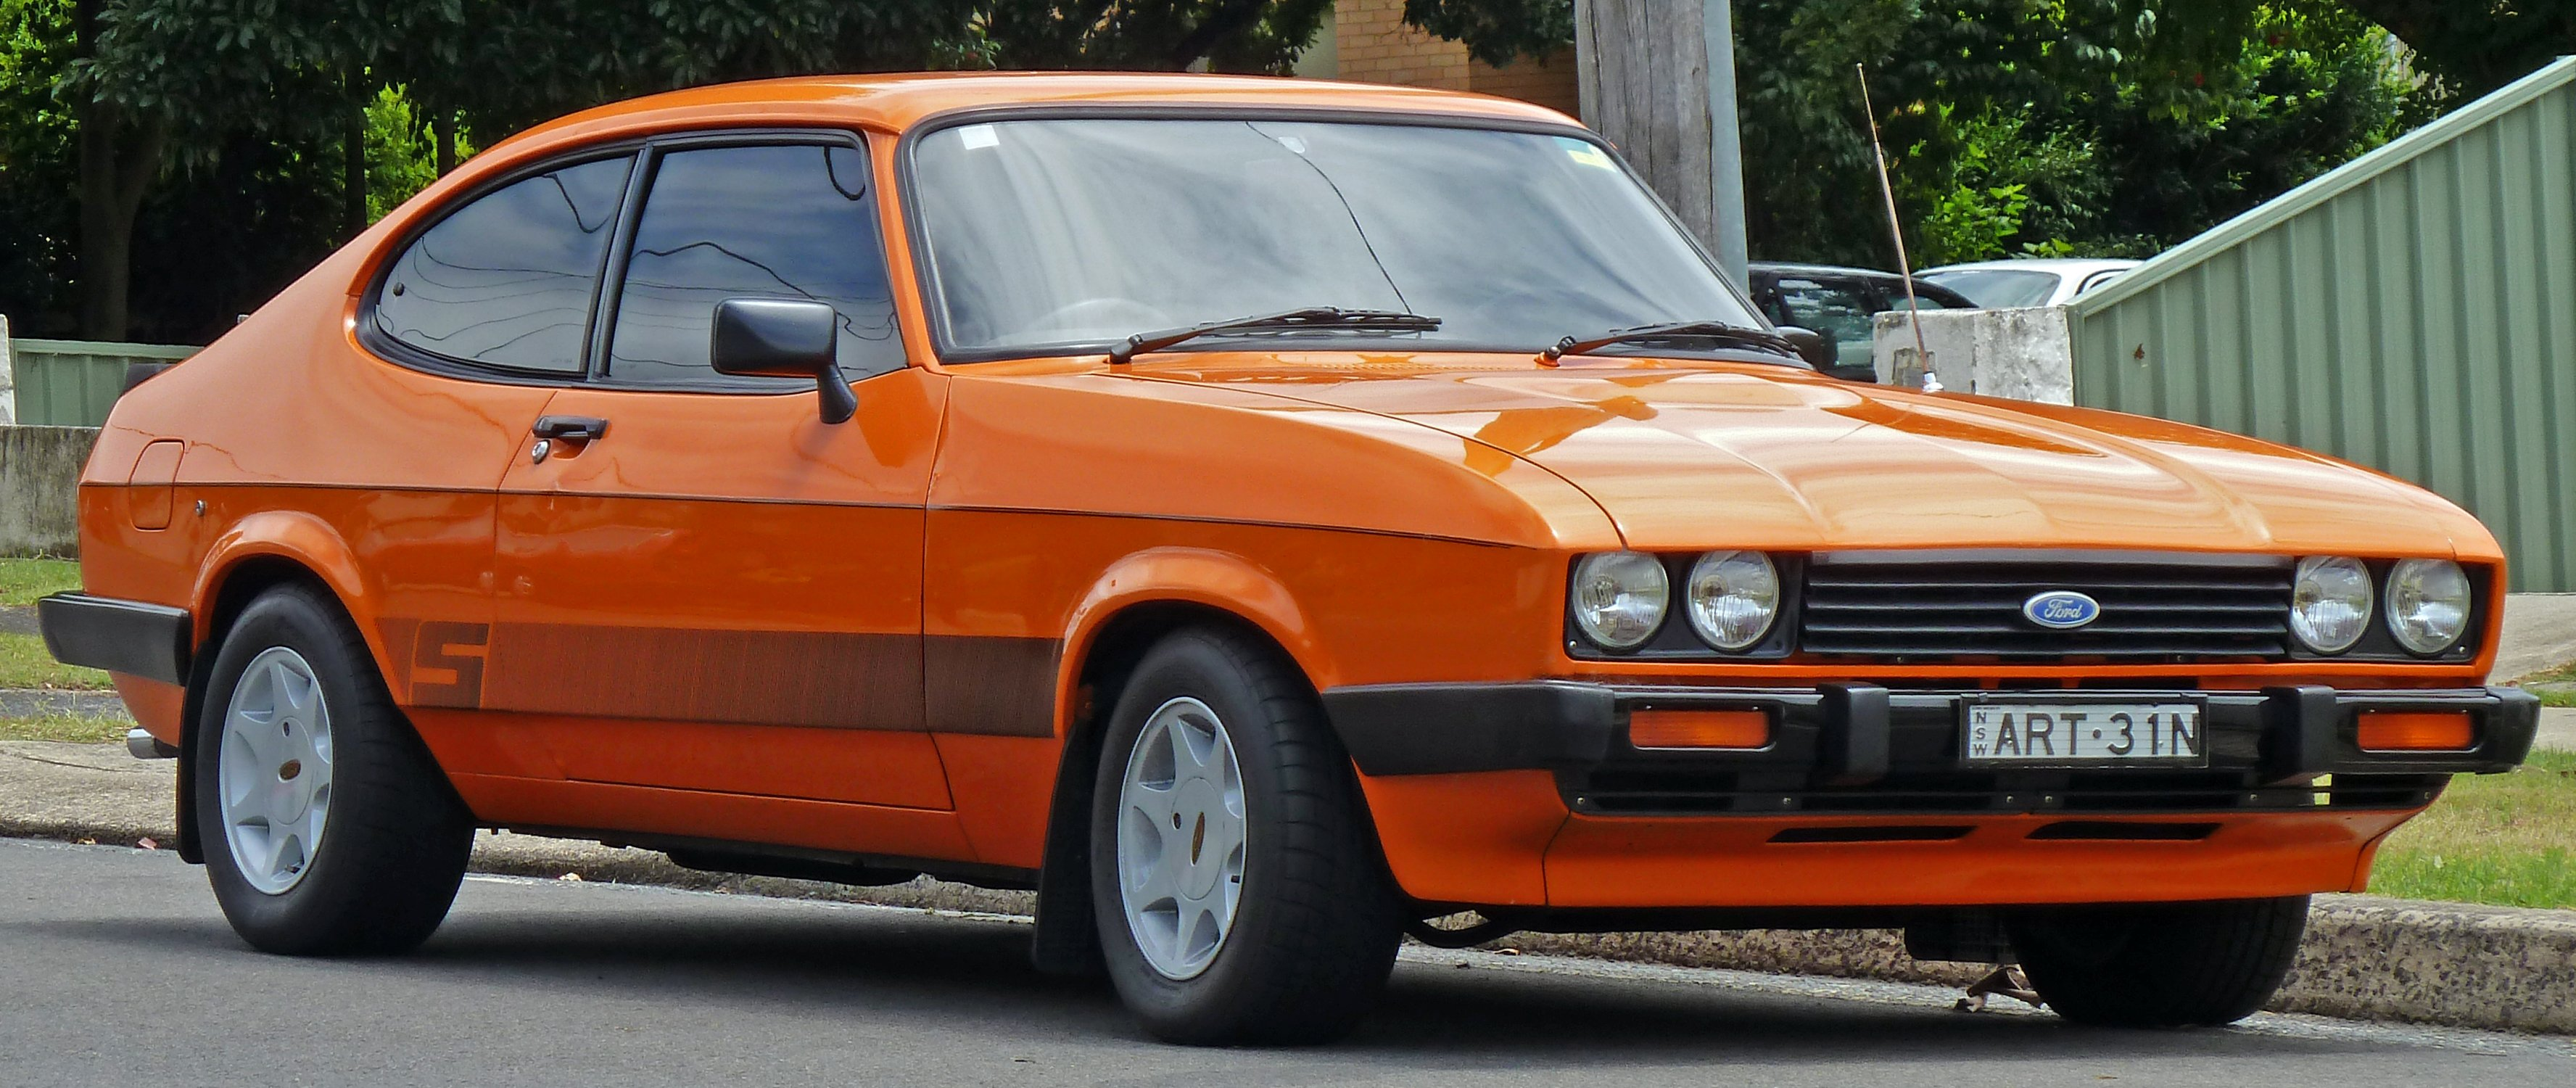 ford capri wallpaper #2